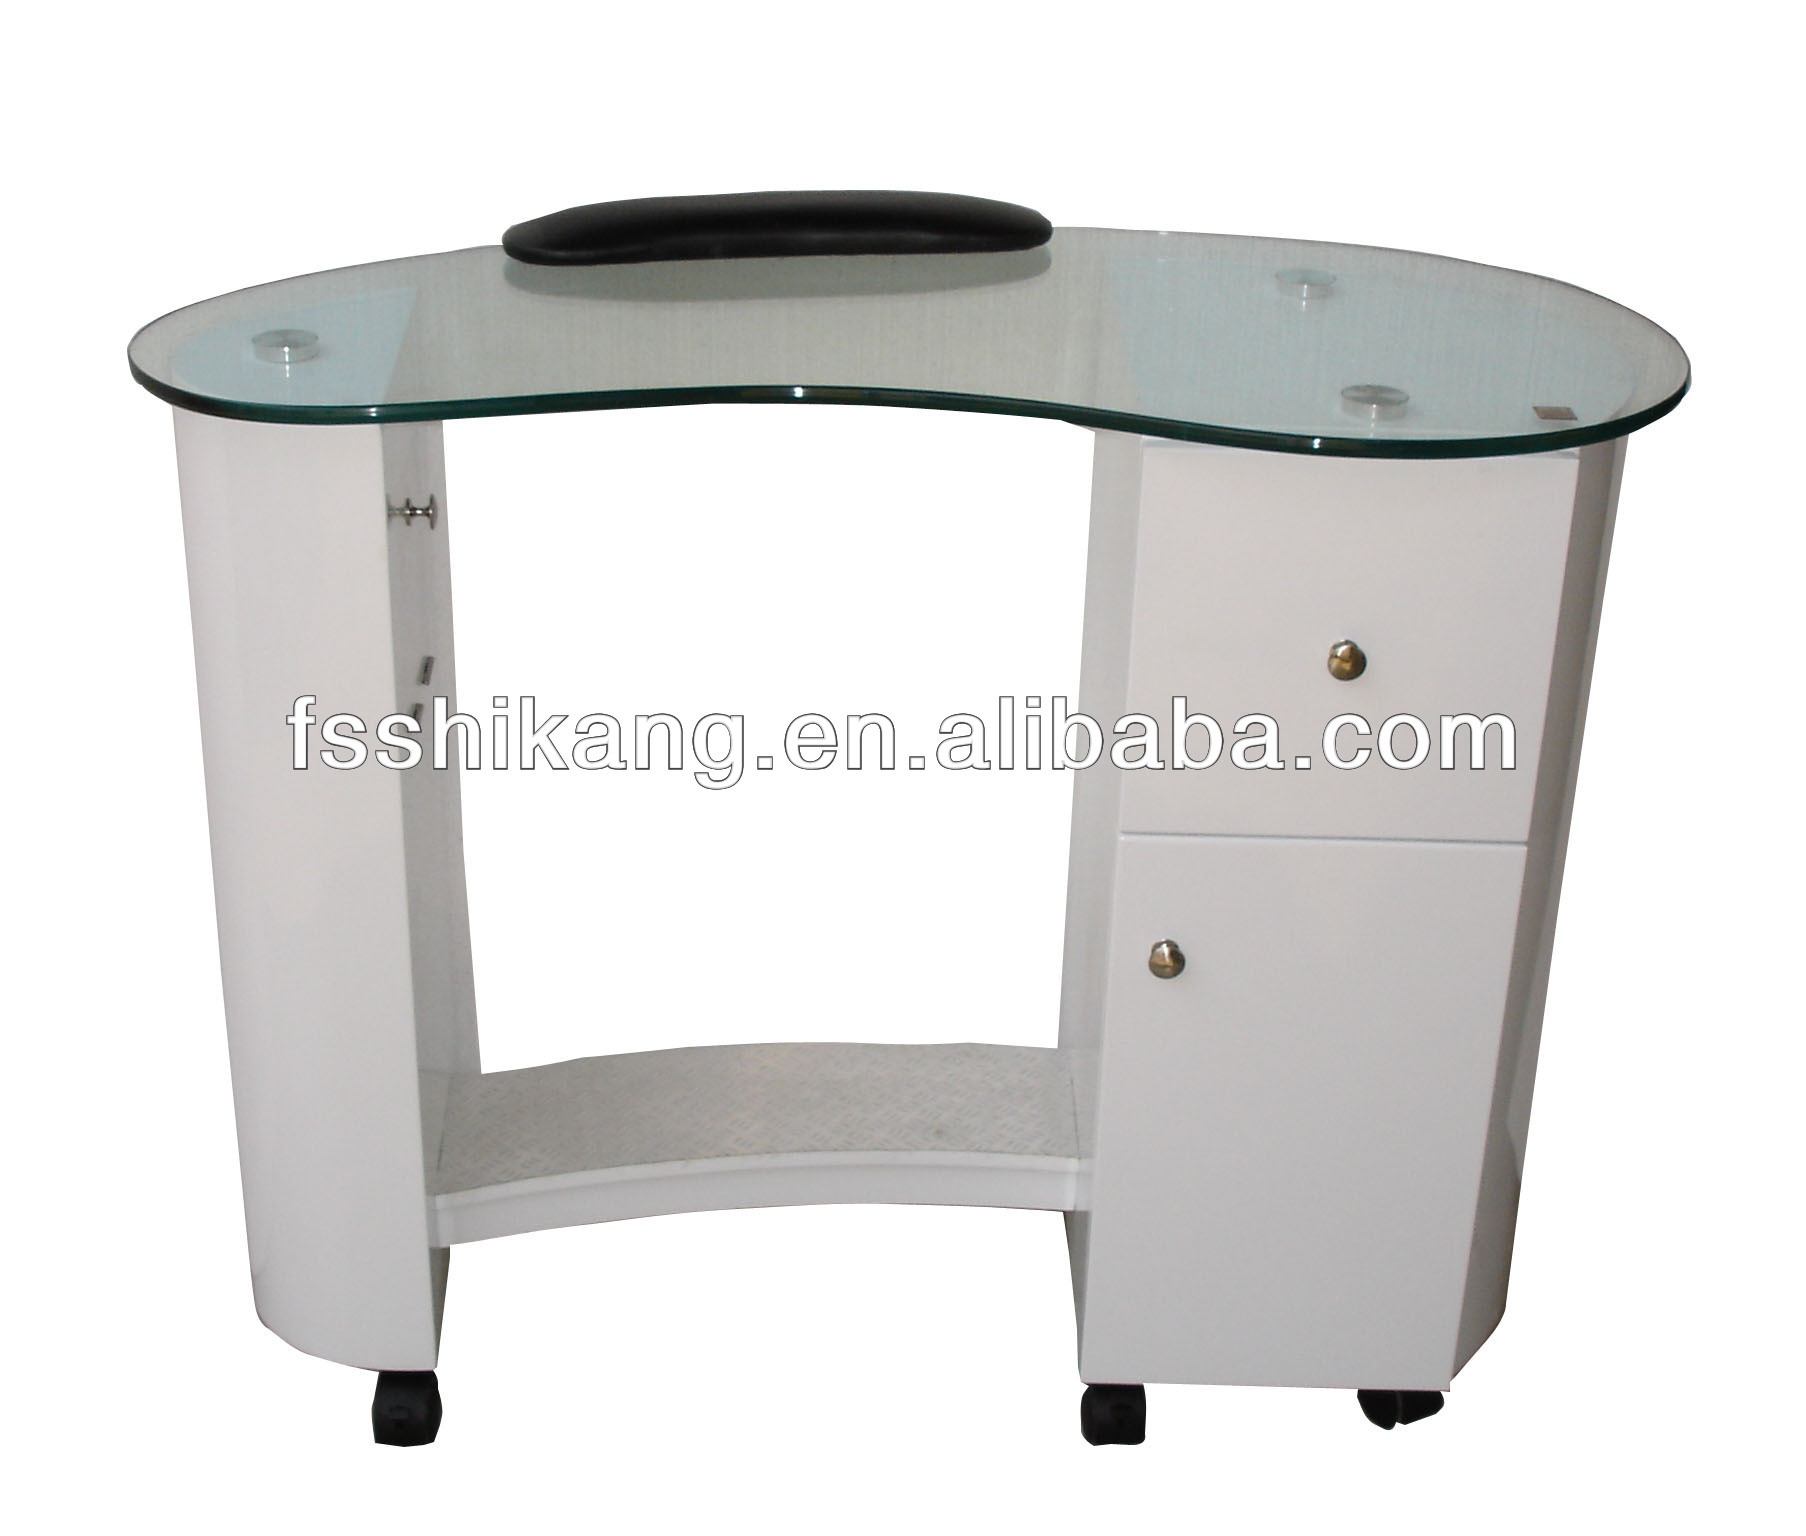 China Nail Art Table, China Nail Art Table Manufacturers and ...